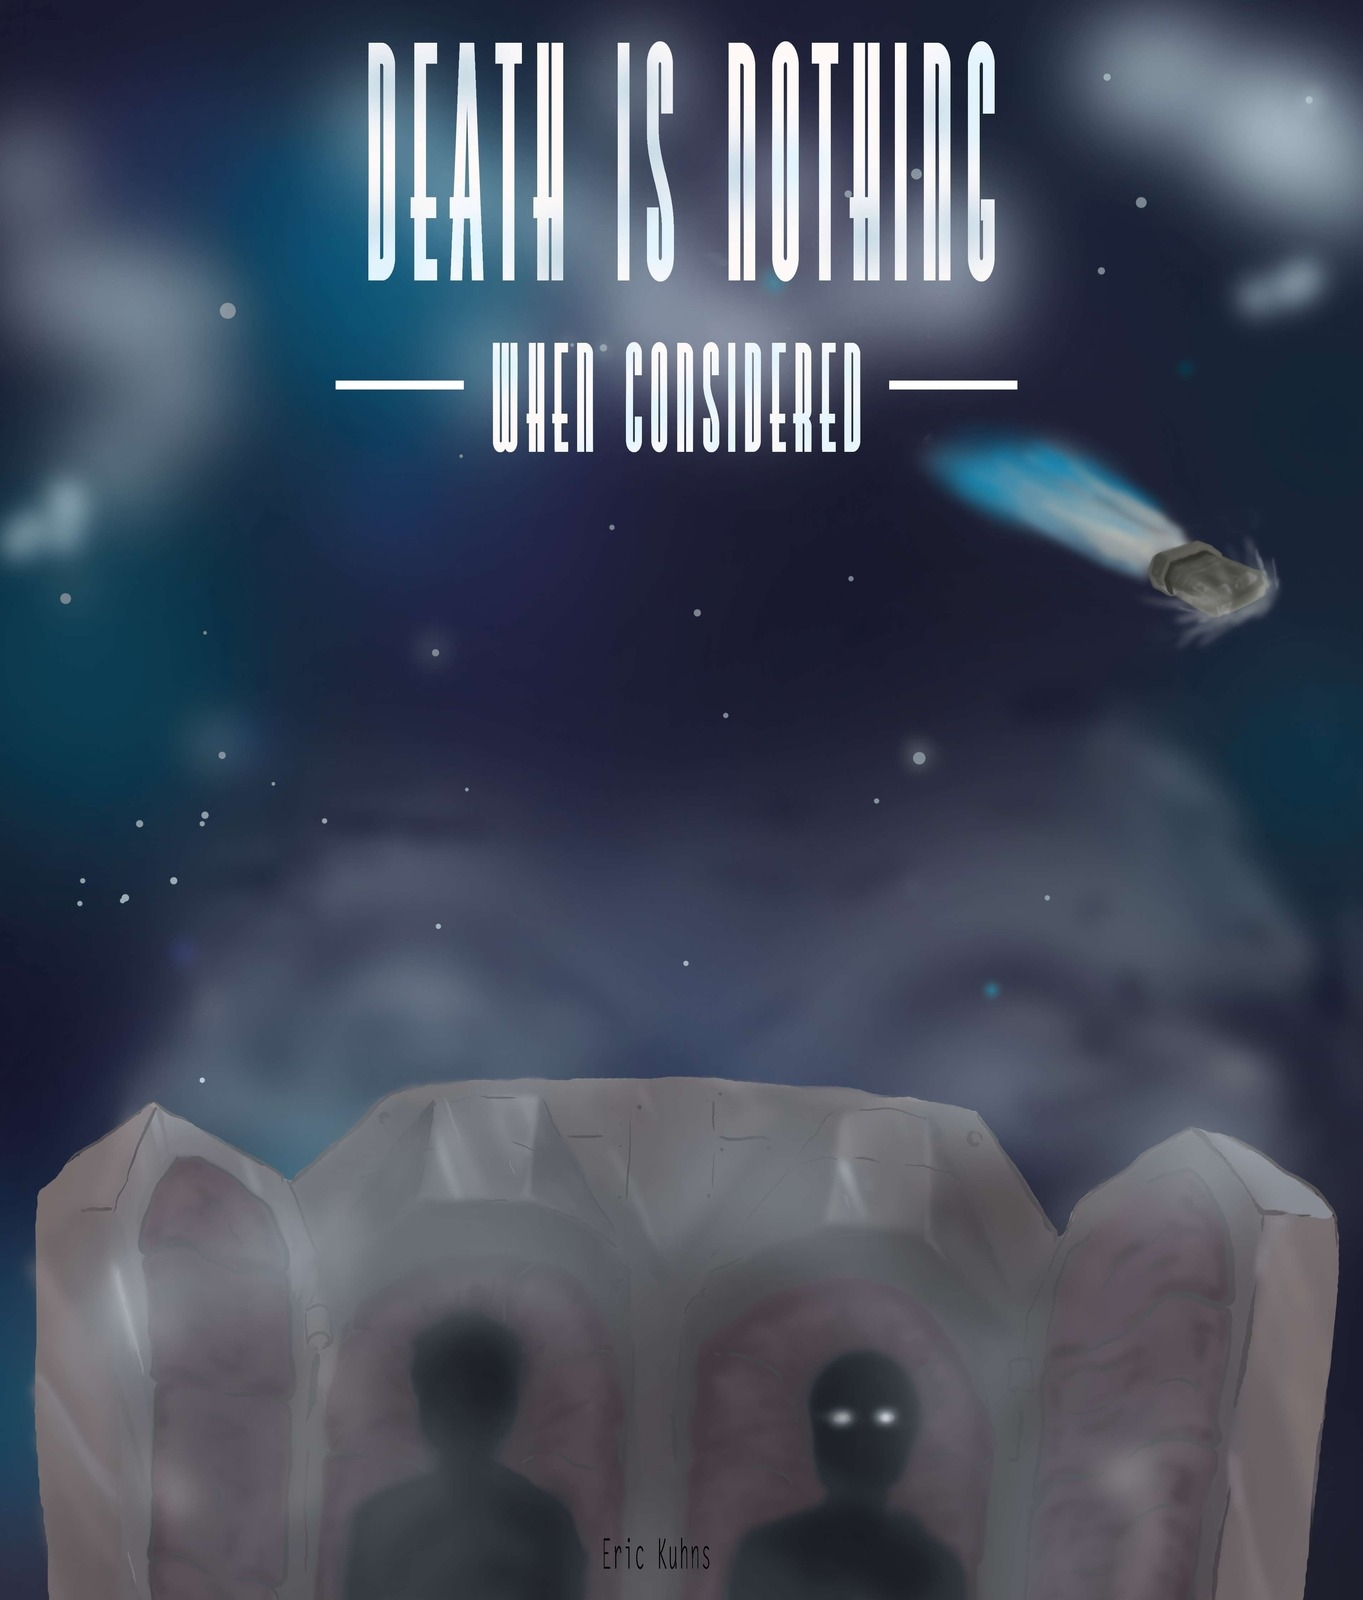 """eBook available now on Amazon - """"Death Is Nothing When Considered"""" by Eric Kuhns"""